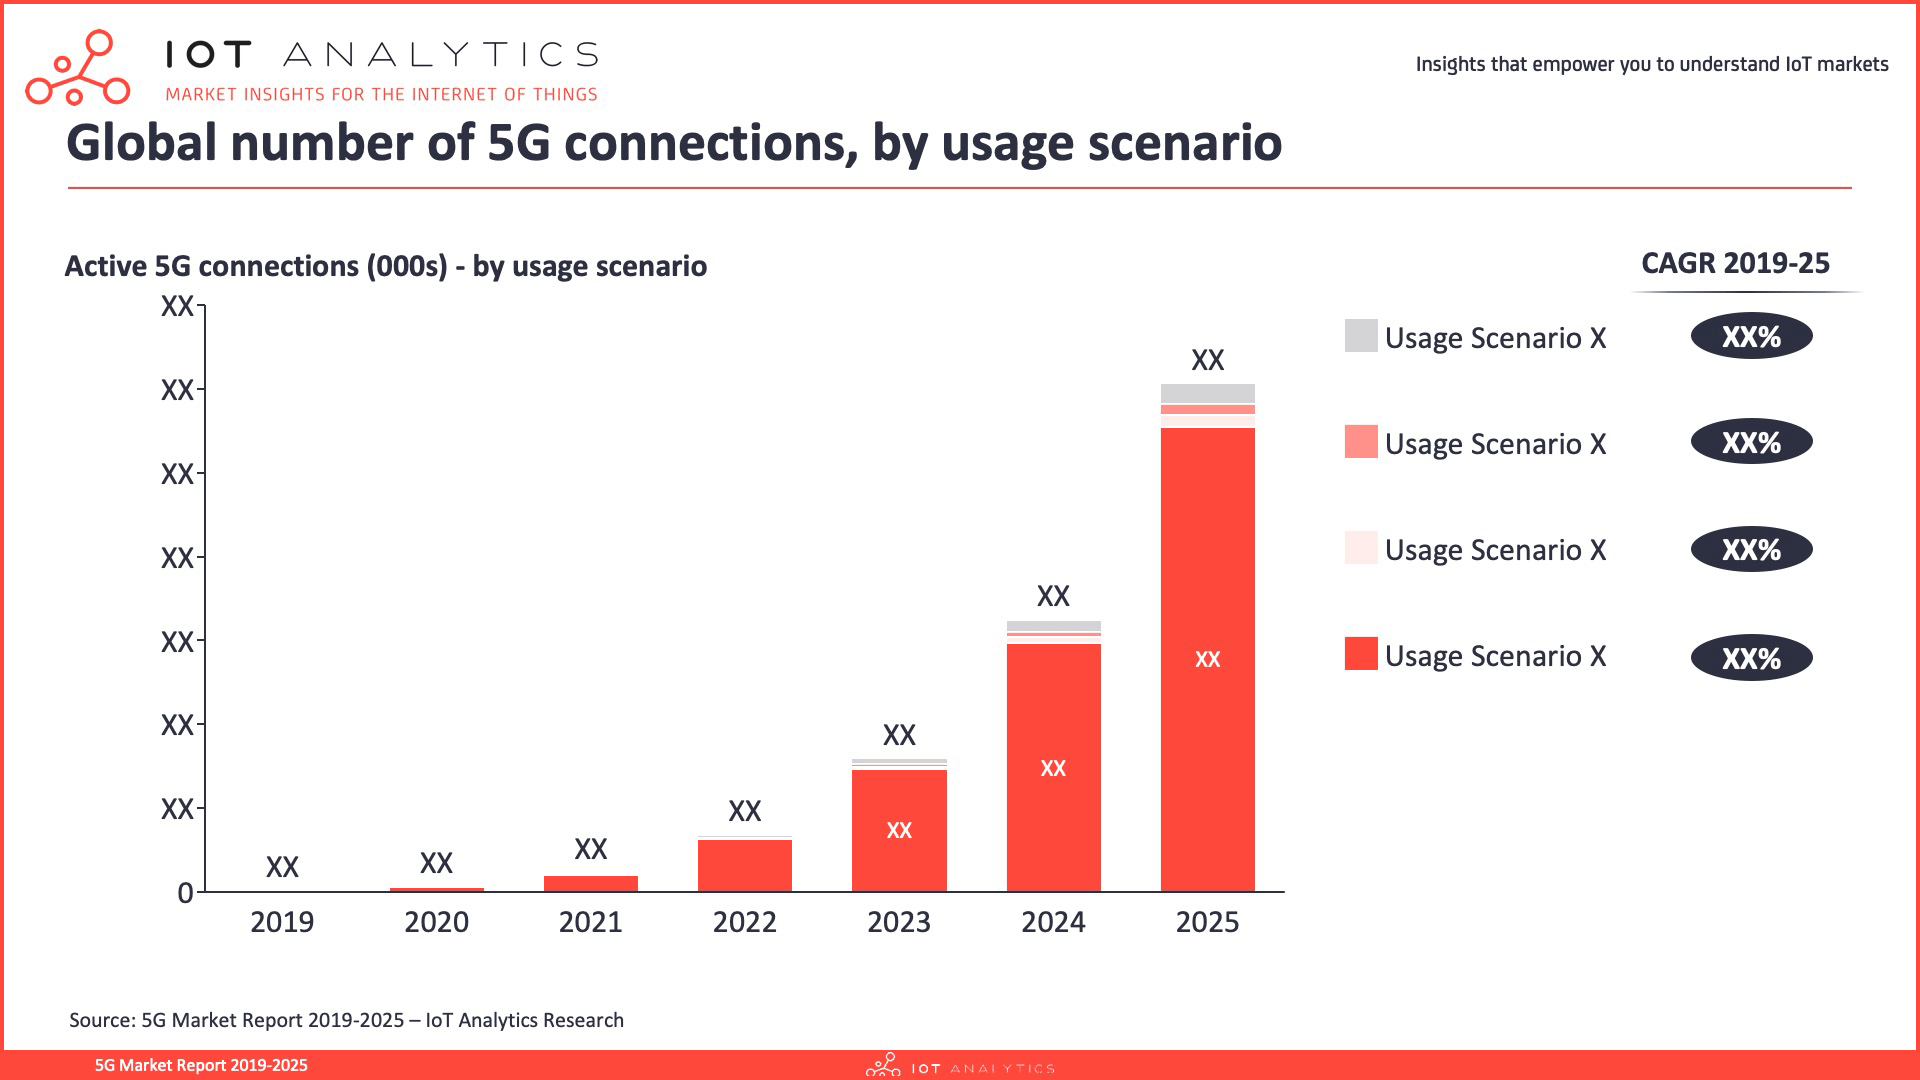 5G Market Report 2019-2025 - Global 5G connections by usage scenario